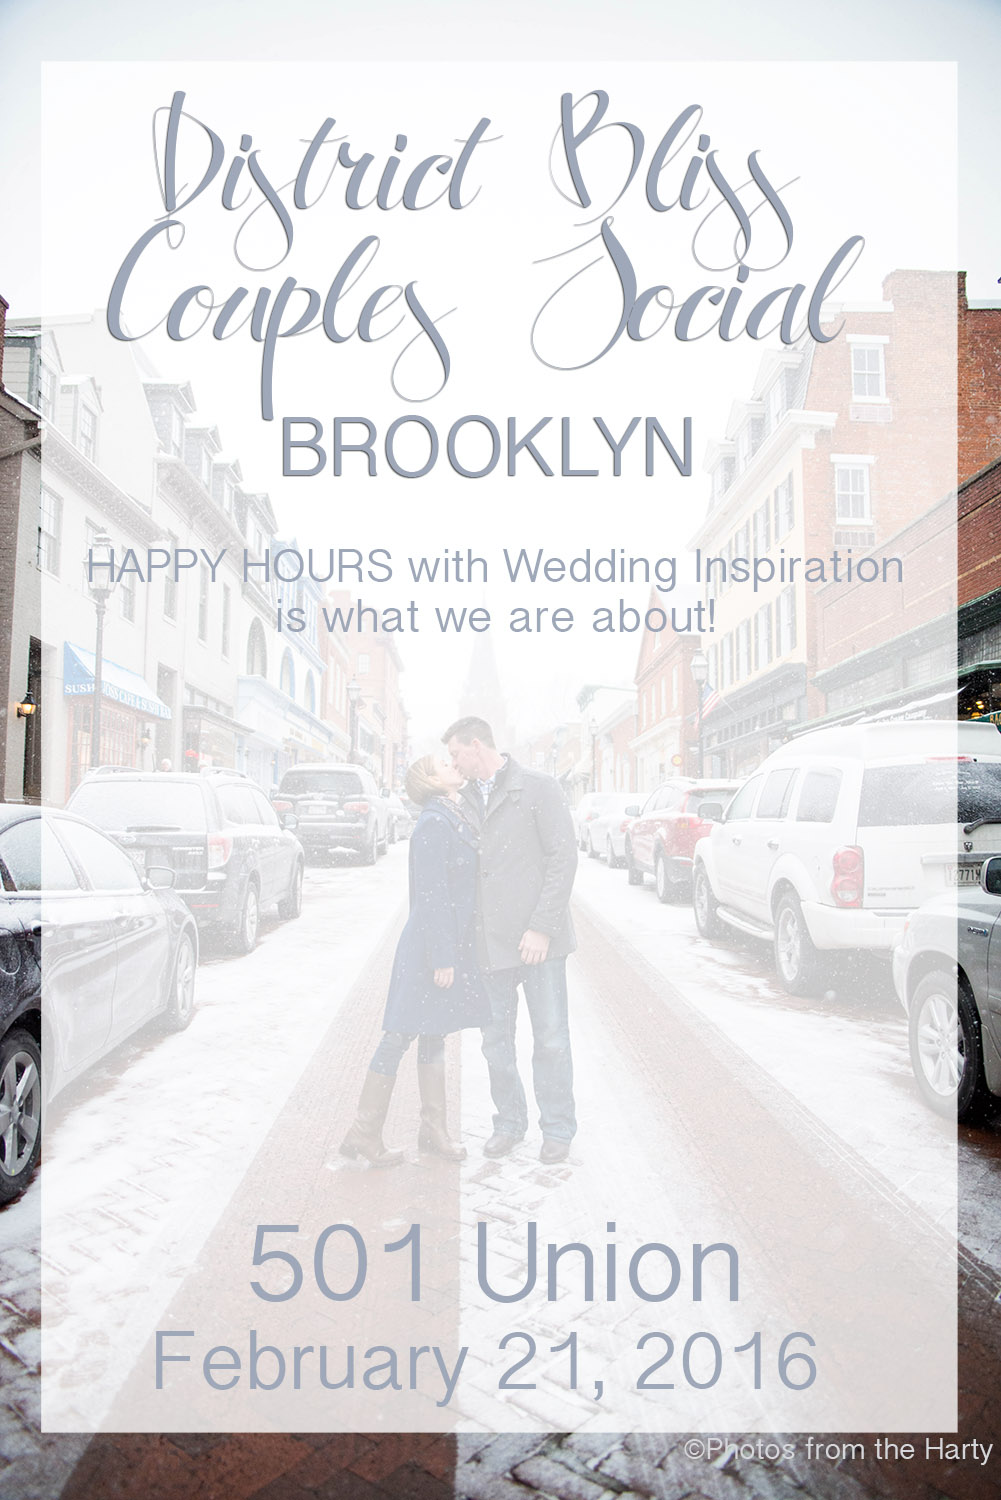 Wedding Expo Alternative, District Bliss Couples Social Happy Hour, Brooklyn, New York, Fun, Gifts, Goodies, Drinks, Vendors, Bridal, Show, Inspiration, Bride, Brides, Bridal Shower, Bridesmaid, Drinks, Happy Hour, Engaged, Fun